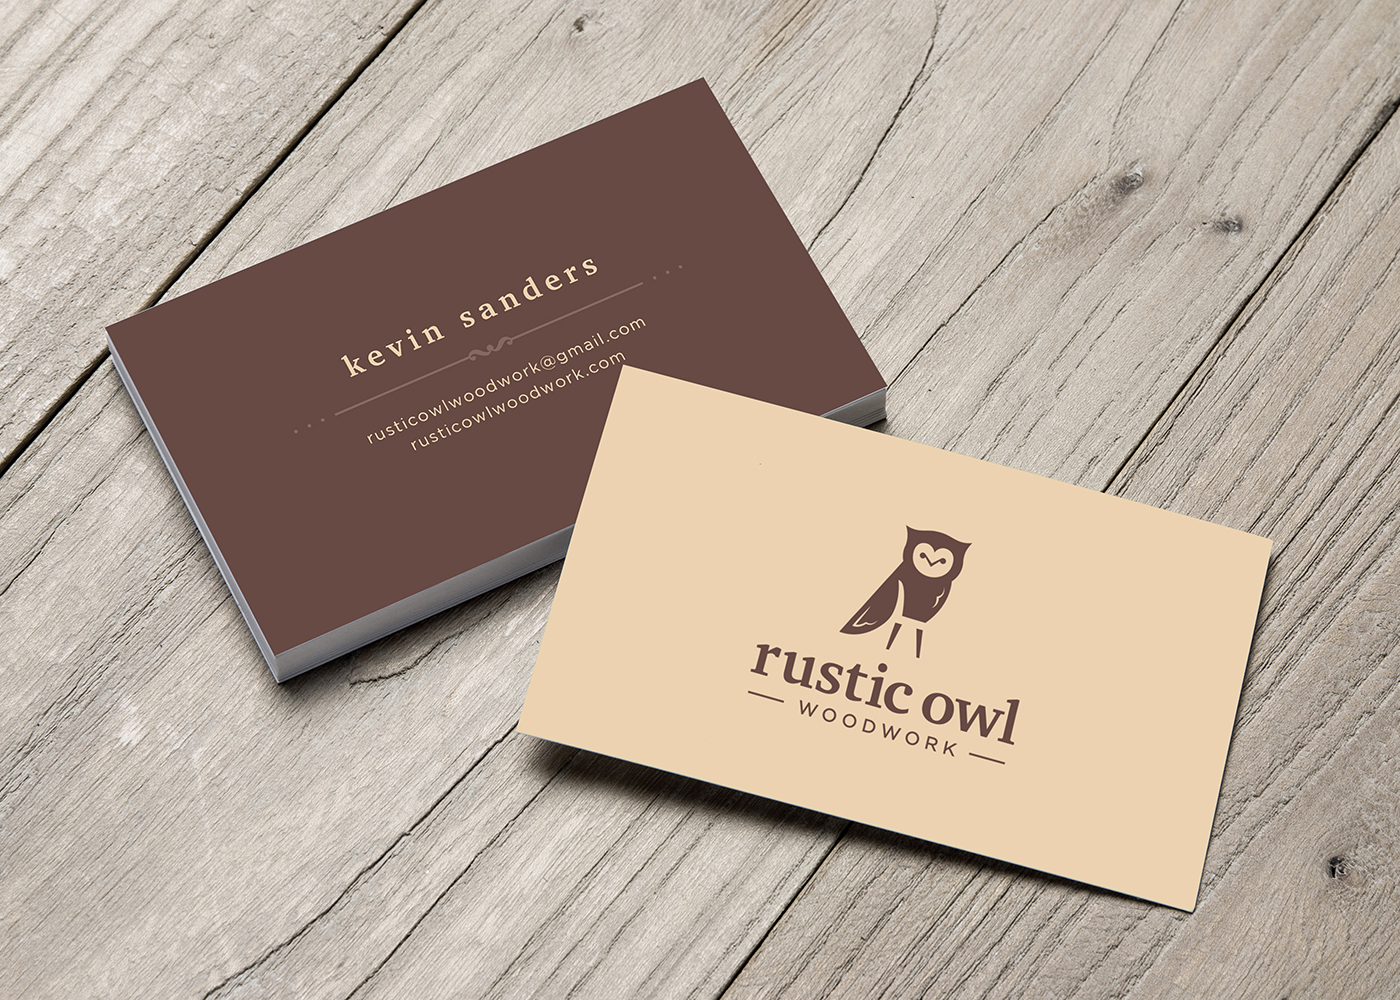 Rustic Owl: Woodwork Business Card Design